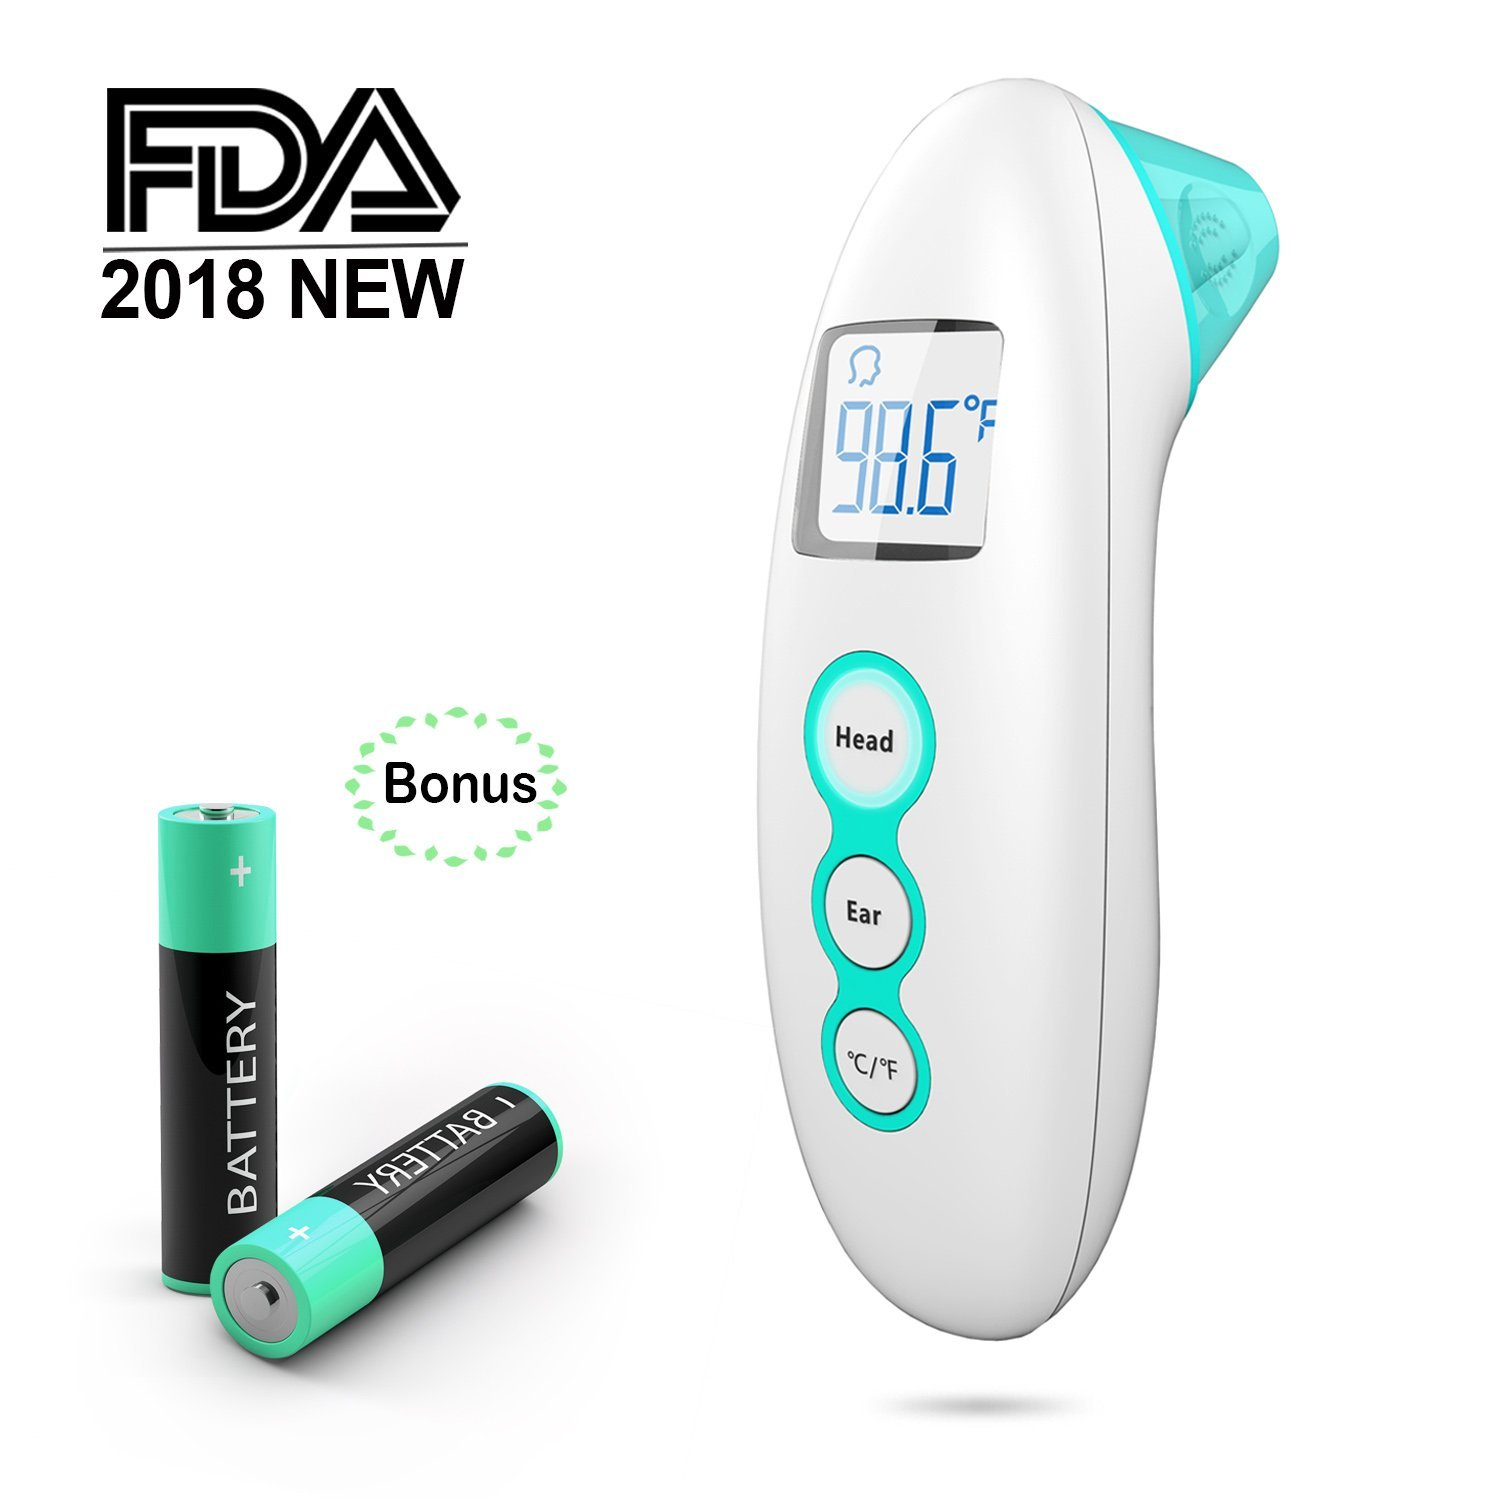 Thermometer for Fever,Medical Digital Forehead and Ear Thermometer for Baby, Kids and Adults,Upgraded Lens Technology for Better Accuracy, Fever Alarm and Color Indicator, FDA Cleared 2018 New (Green)